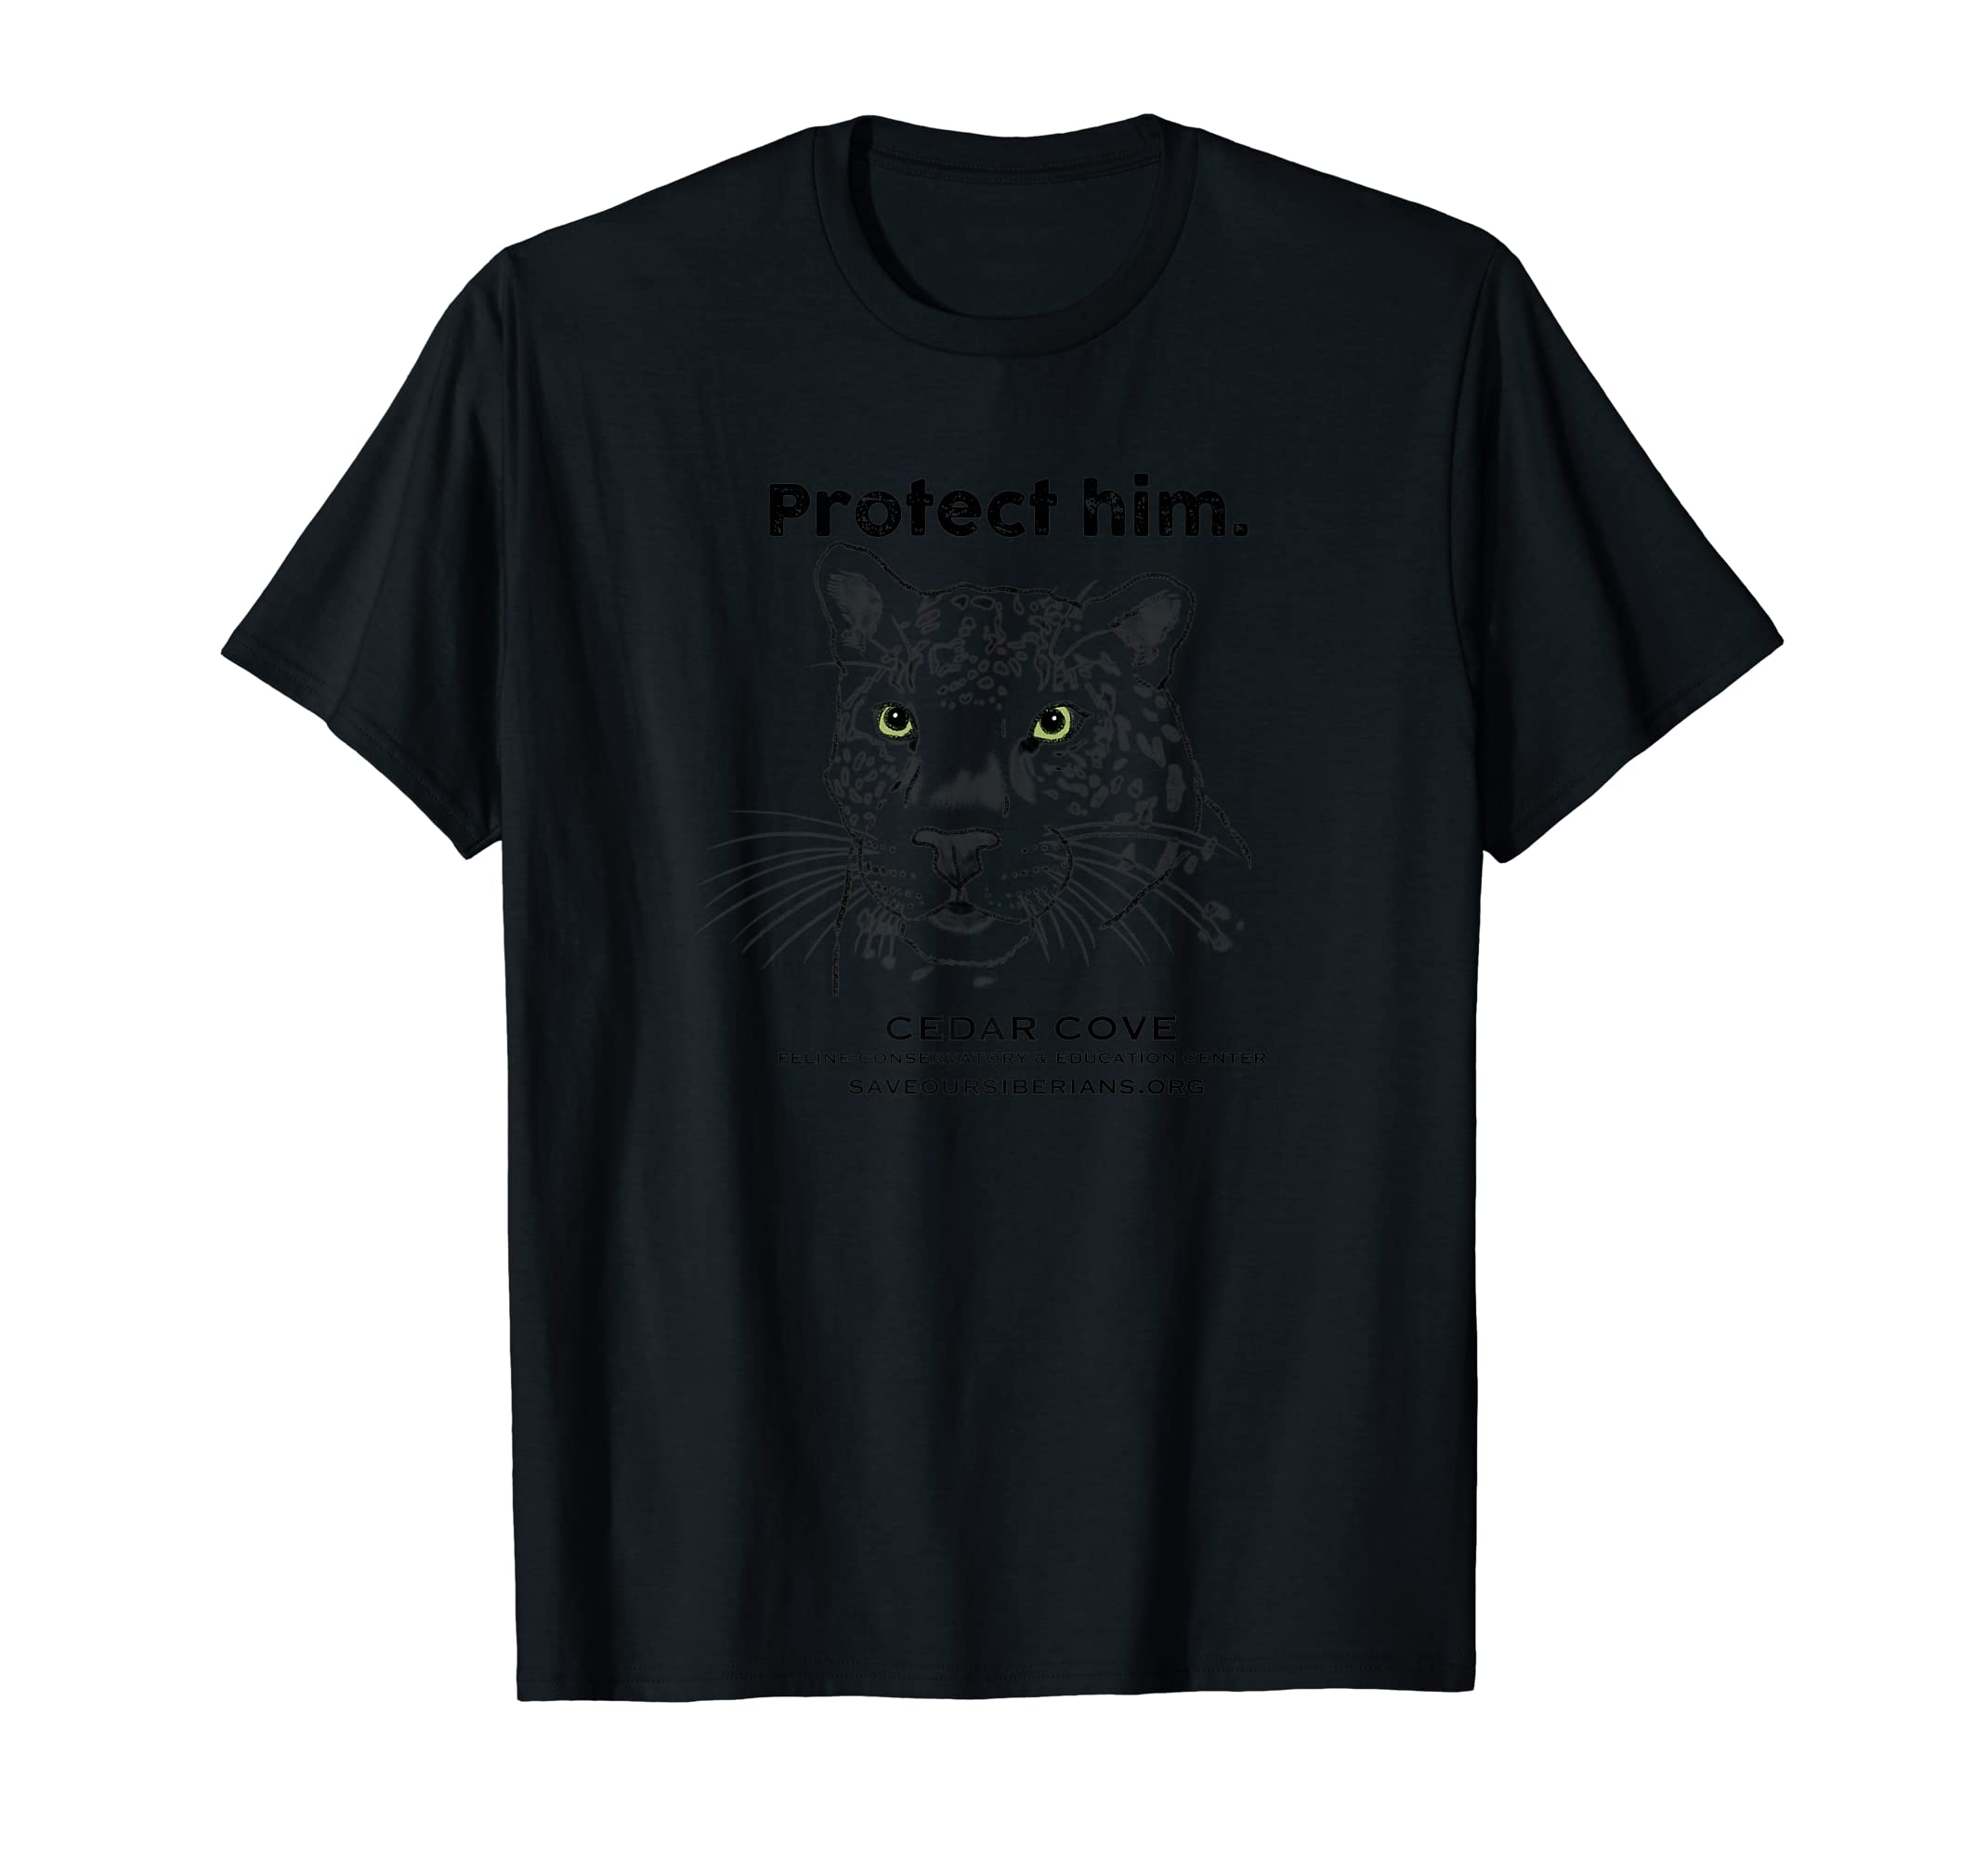 Cedar Cove Voodoo Shirt, Leopard, Big Cats Premium T-Shirt-Men's T-Shirt-Black